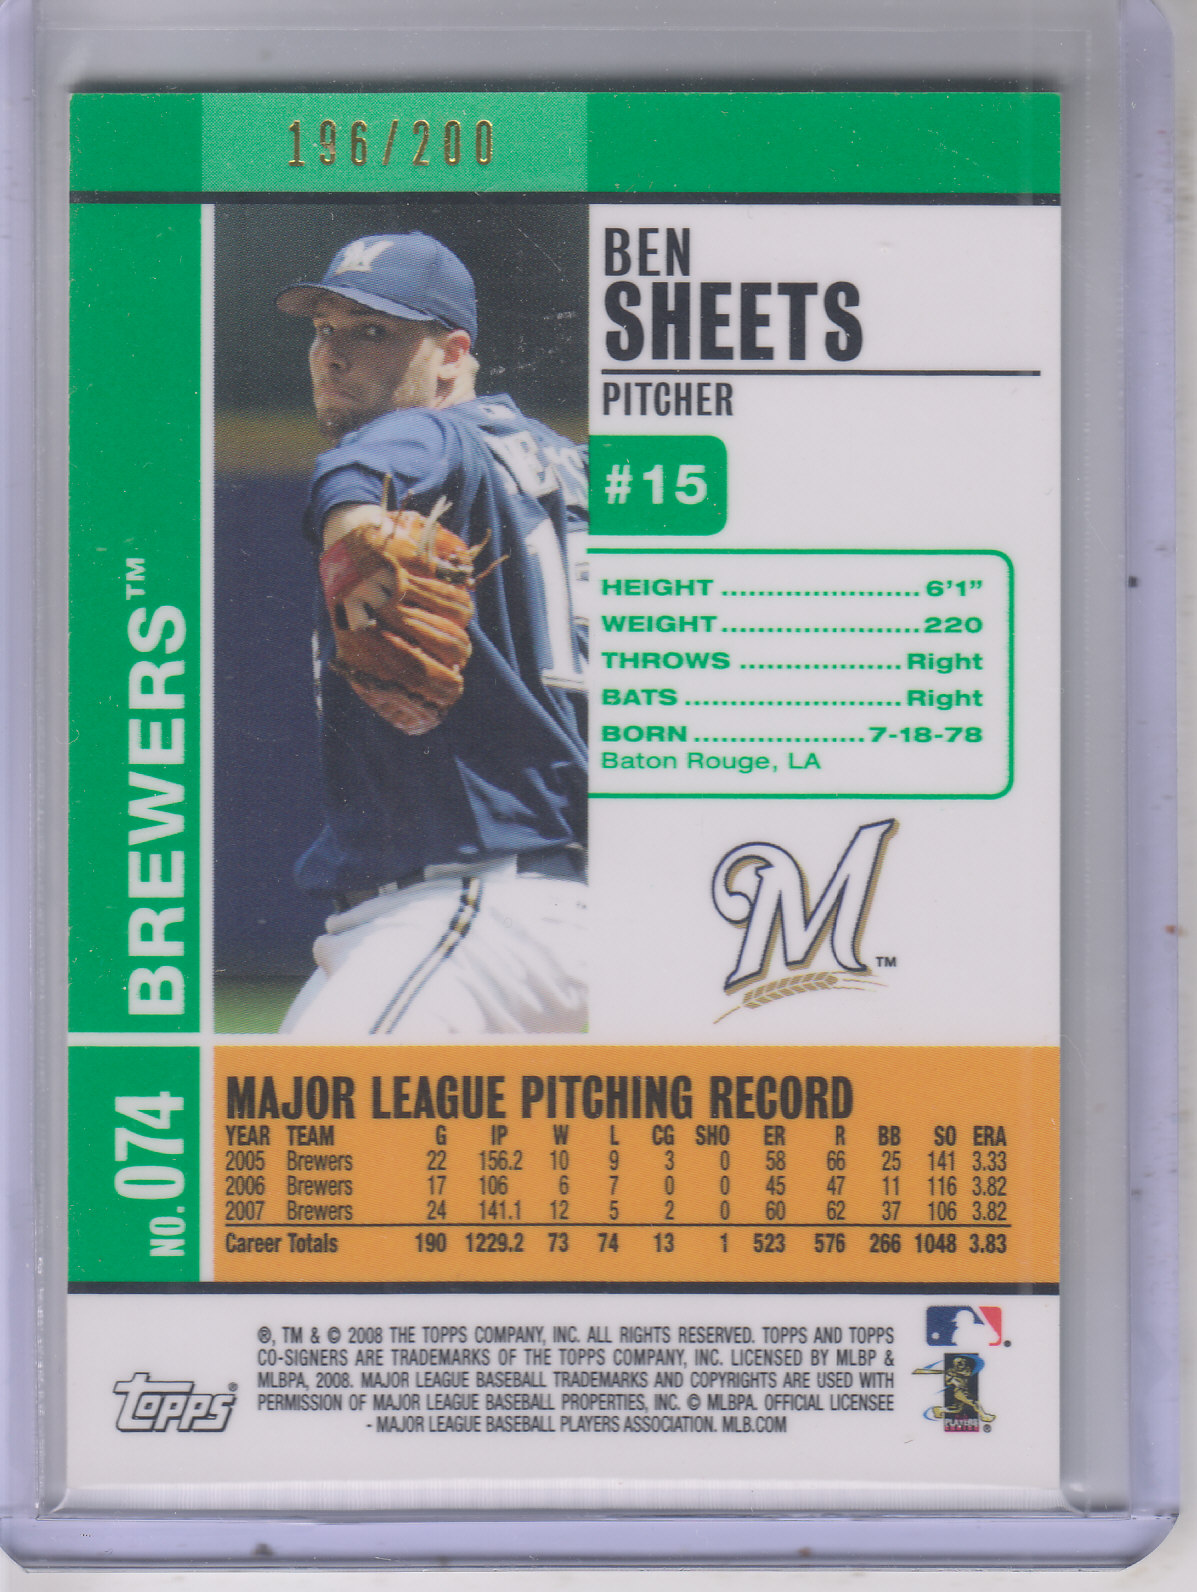 2008 Topps Co-Signers Silver Green #74a Ben Sheets back image